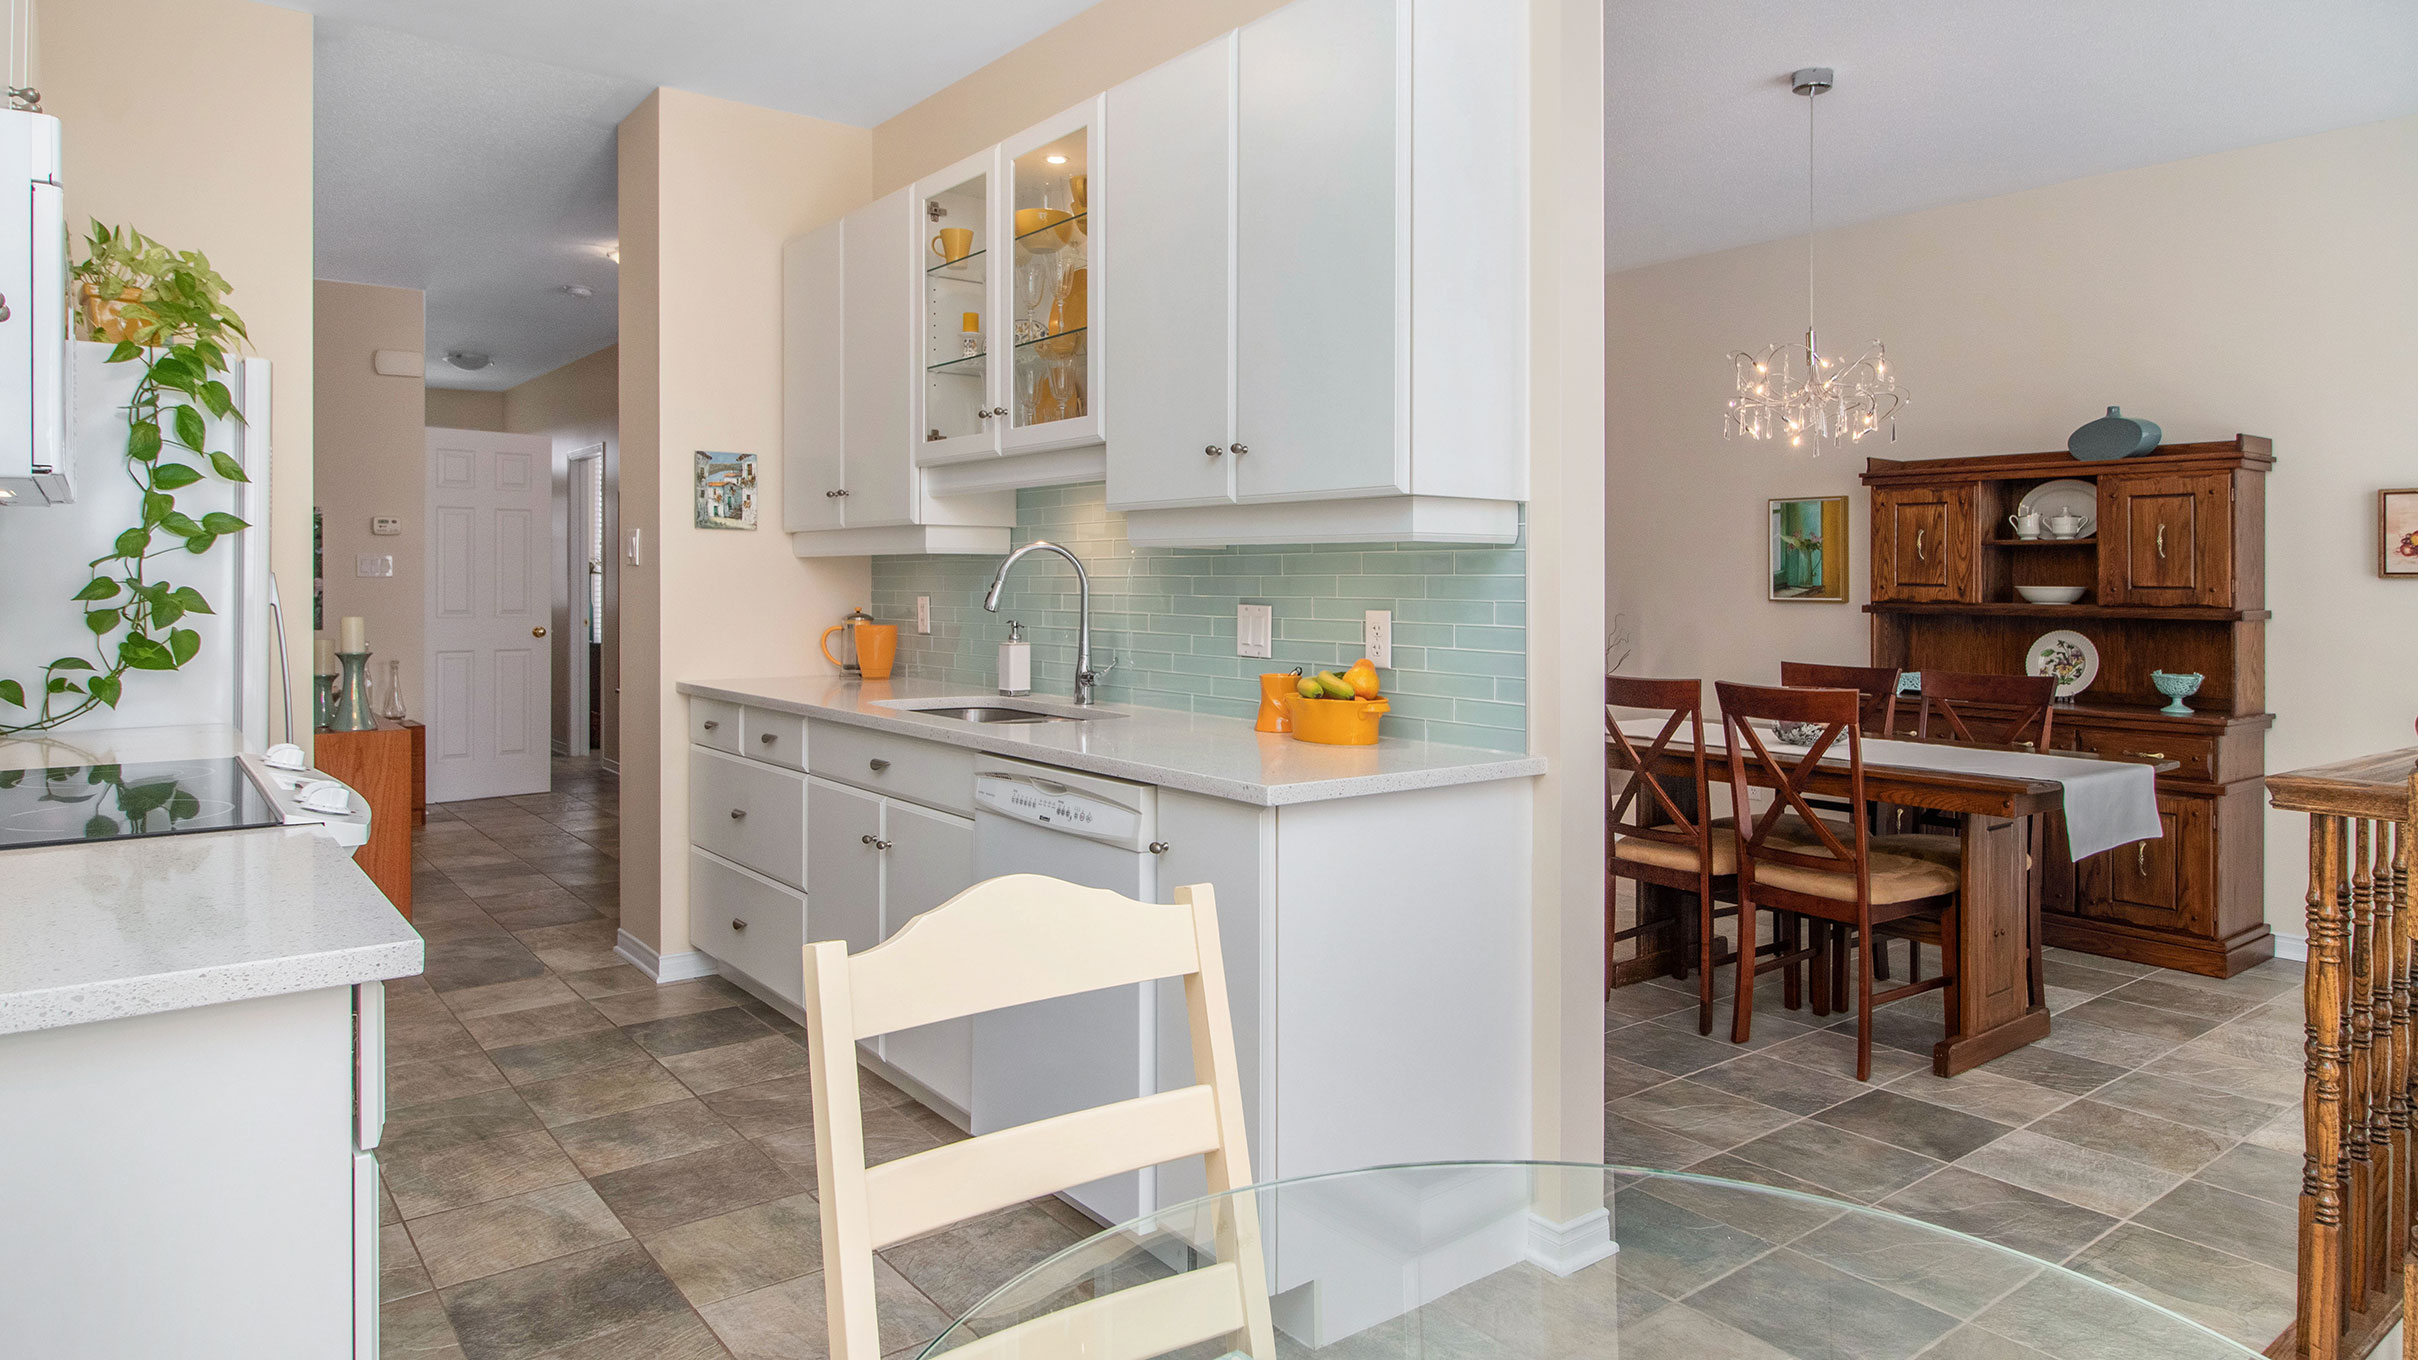 Stunning white and bright galley style kitchen with quartz counter tops and glass tiled backsplace.  Also has a nice eating area